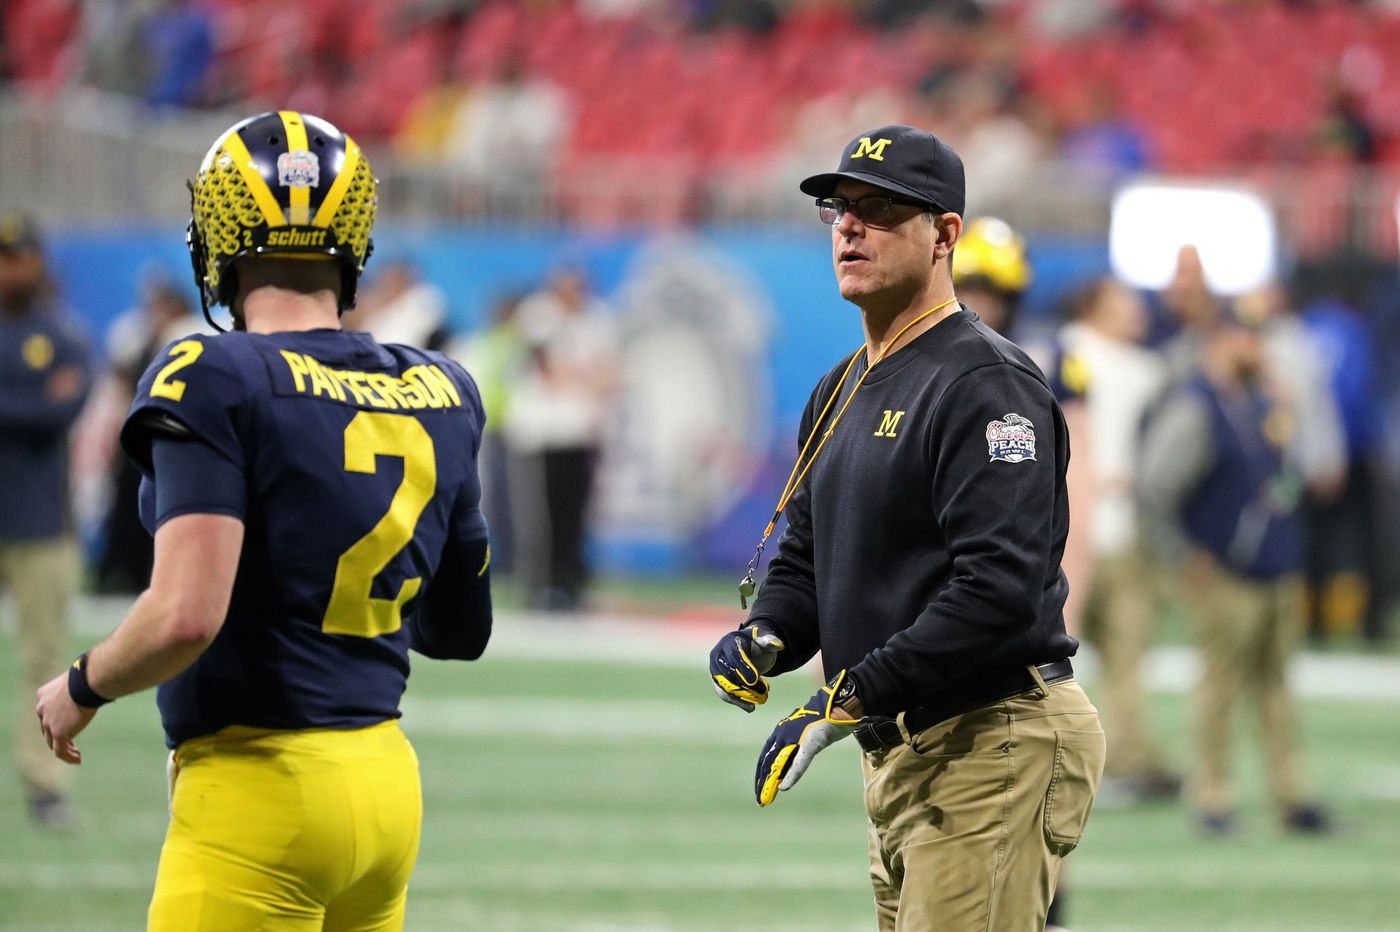 sneakers for cheap d7269 6b282 Sporting News  Bill Bender shares insight on Michigan and Big Ten football  - Maize n Brew